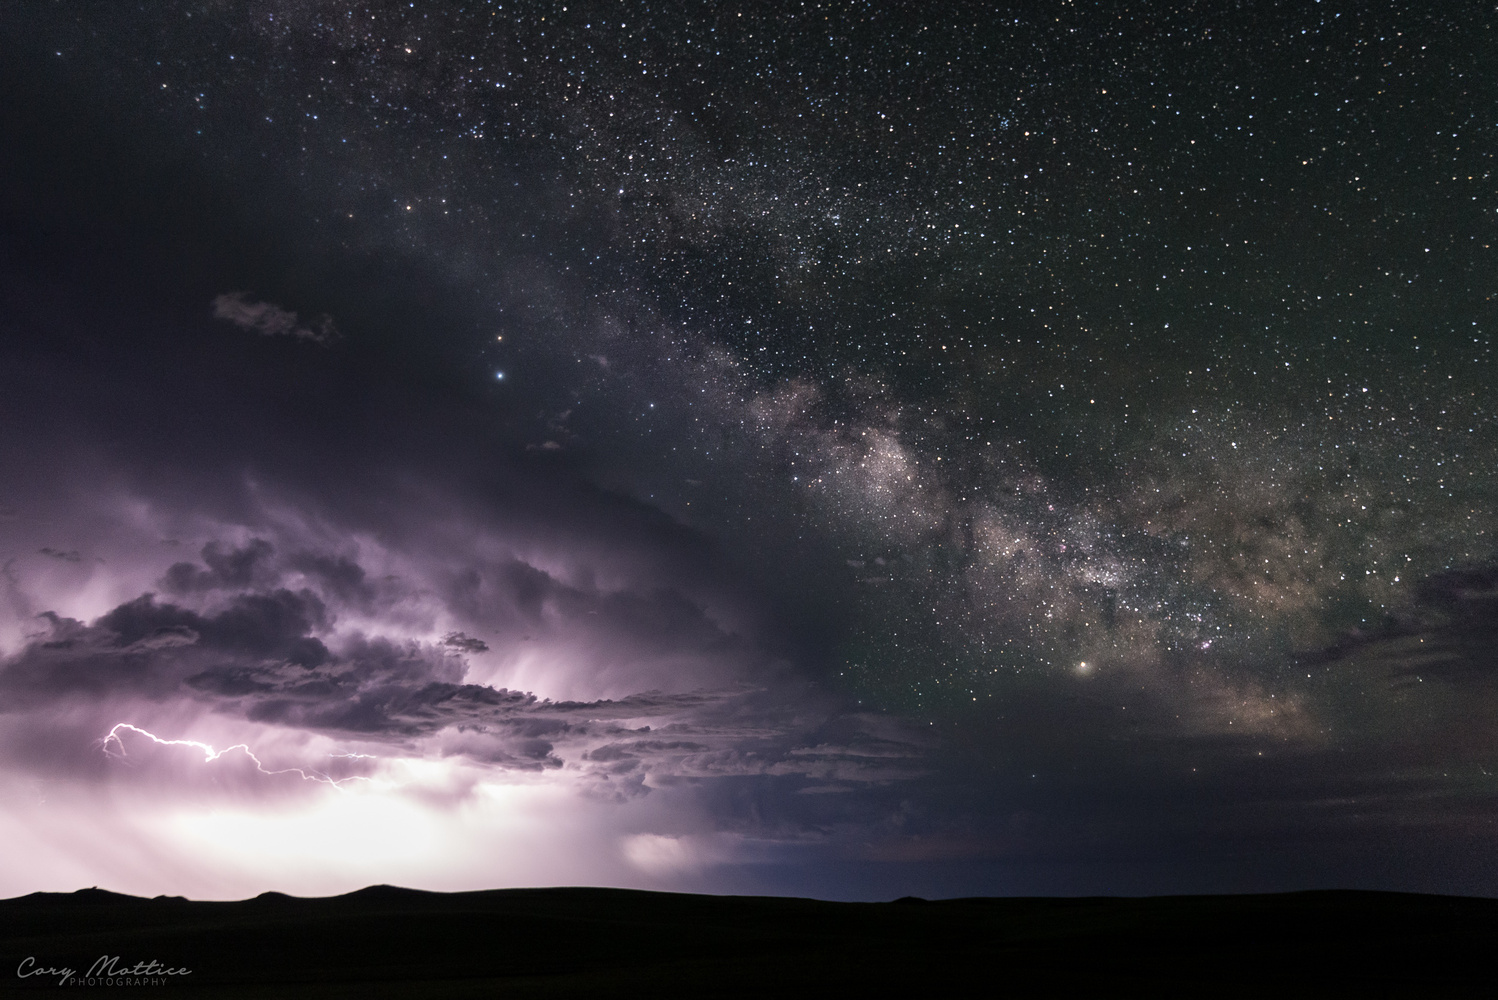 Milky Way Rising Above a Thunderstorm by Cory Mottice